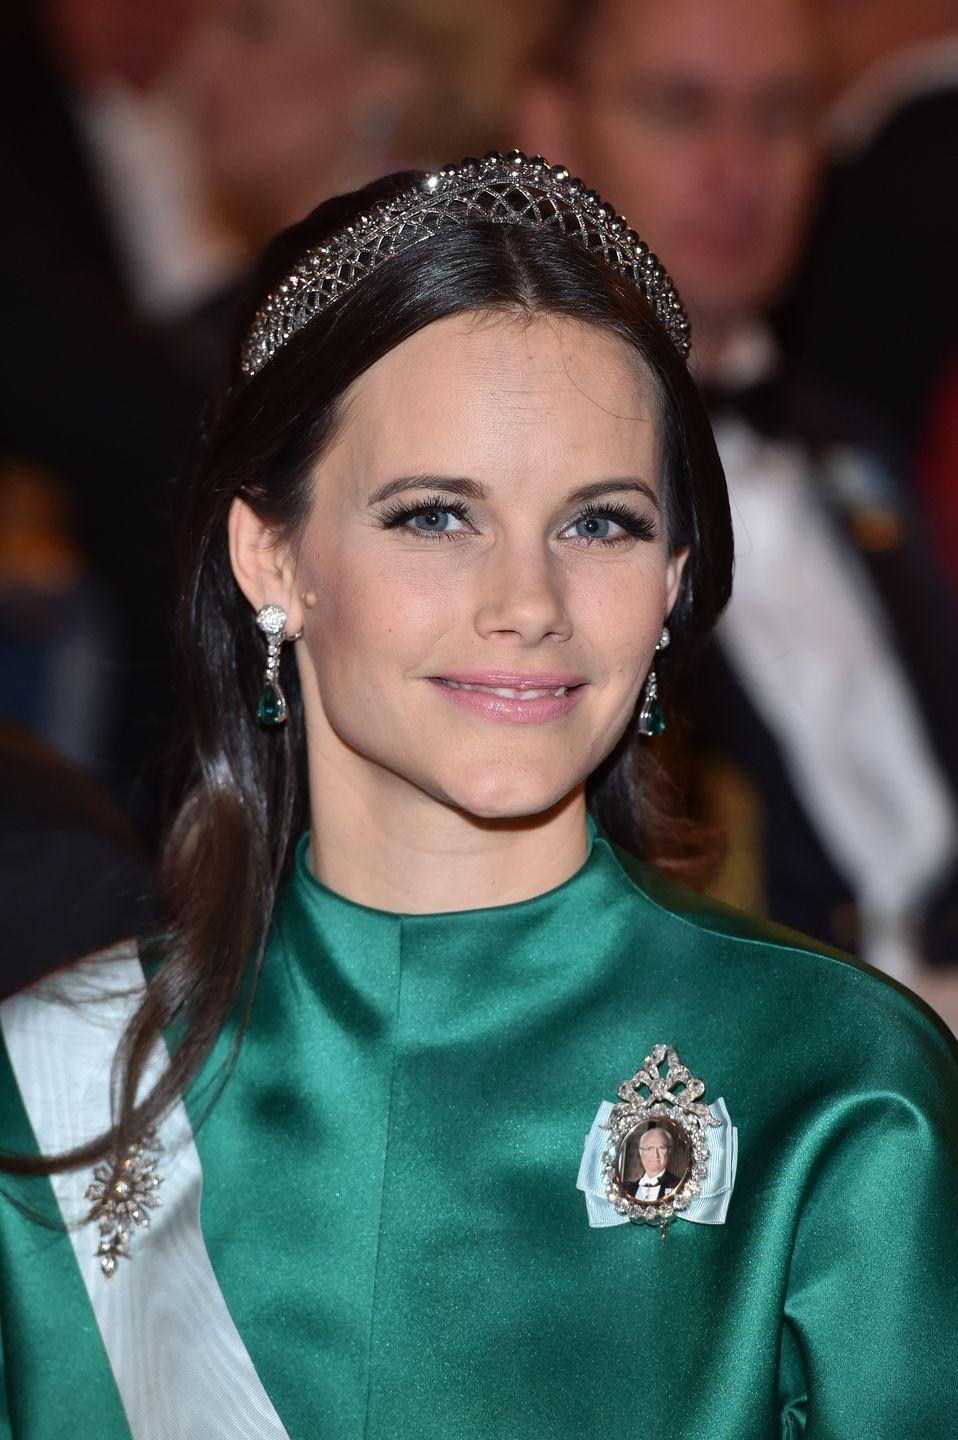 "<p>Before meeting Prince Carl, Sofia held jobs in modeling, TV, and at one point, moved to New York City to study business development while teaching yoga and waitressing on the side. The couple's 2015 wedding took place at the <a href=""http://www.cosmopolitan.com/style-beauty/fashion/news/g4843/dresses-from-the-swedish-royal-wedding-you-have-to-see-to-believe/"" rel=""nofollow noopener"" target=""_blank"" data-ylk=""slk:Royal Palace in Stockholm"" class=""link rapid-noclick-resp"">Royal Palace in Stockholm</a>, where more than 500 guests were in attendance, including several royals from around the world, of course. In August 2017, <a href=""https://www.instagram.com/p/BYgM5saH8wn/"" rel=""nofollow noopener"" target=""_blank"" data-ylk=""slk:Sofia gave birth to her second child, Prince Gabriel, Duke of Dalarna"" class=""link rapid-noclick-resp"">Sofia gave birth to her second child, Prince Gabriel, Duke of Dalarna</a>. Sofia and Carl are also parents to Prince Alexander, Duke of Södermanland, who was born in April 2016.</p>"